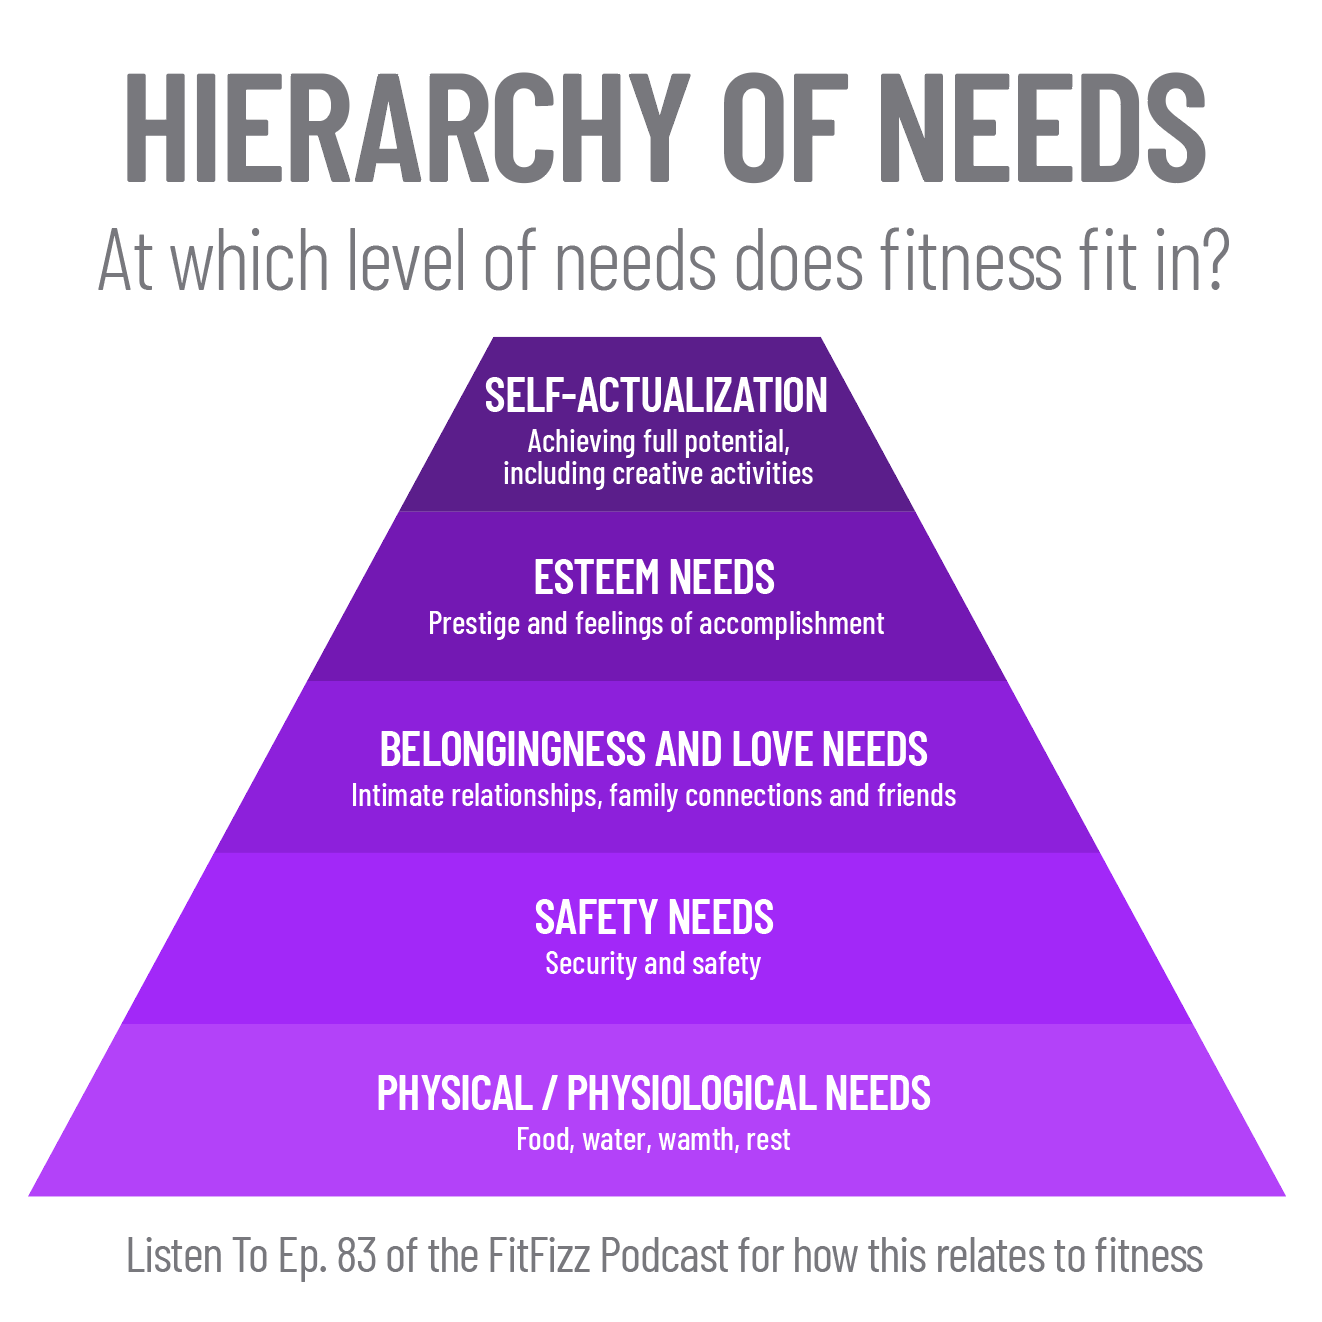 Hierarchy-of-needs-fitfizz-podcast-83